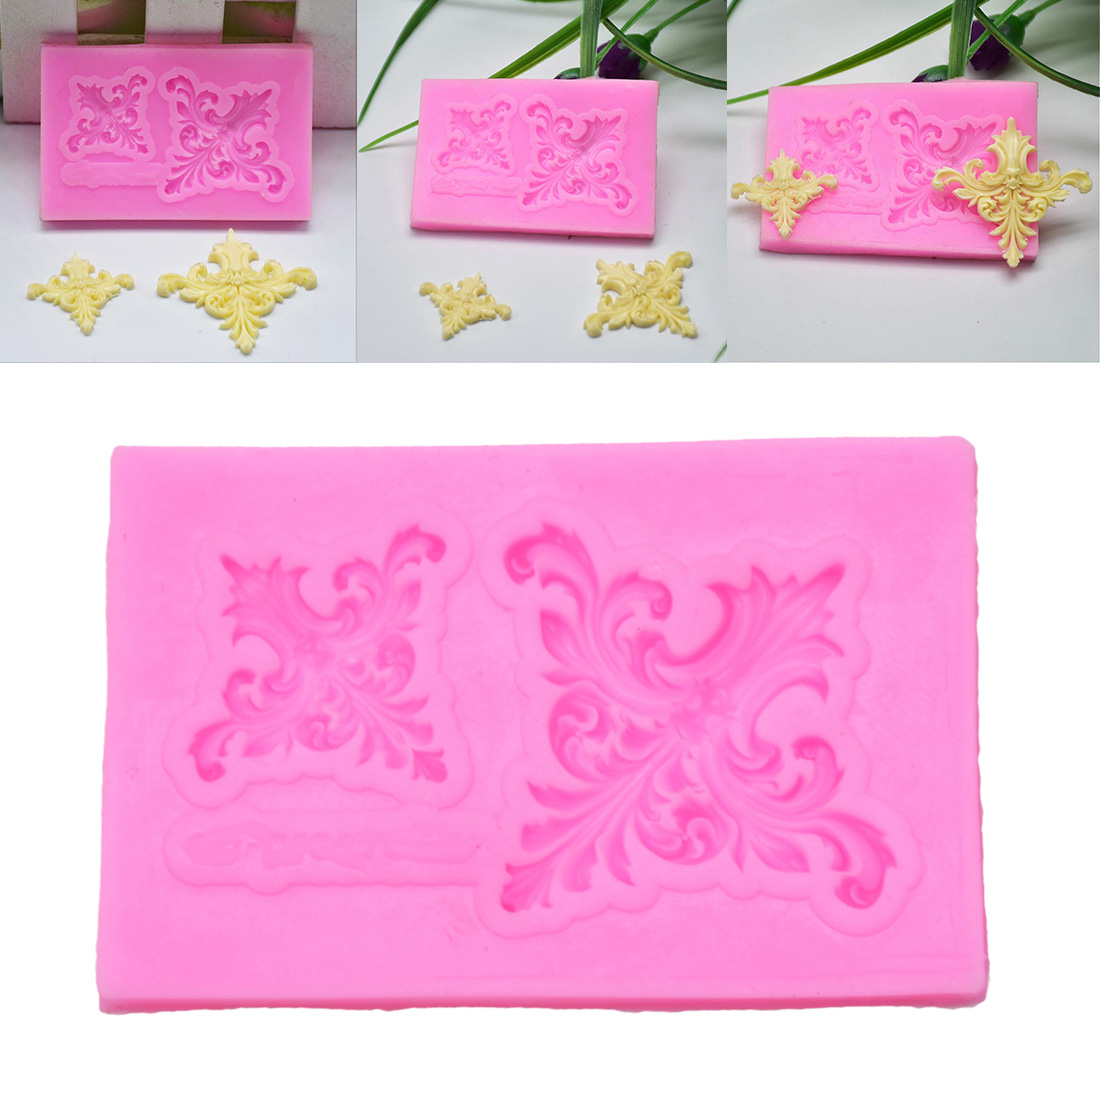 Cake Decorating Tools 3D Leaf Flower Vine Lace Decorations Chocolate Party DIY Fondant Baking Cooking Silicone Mold